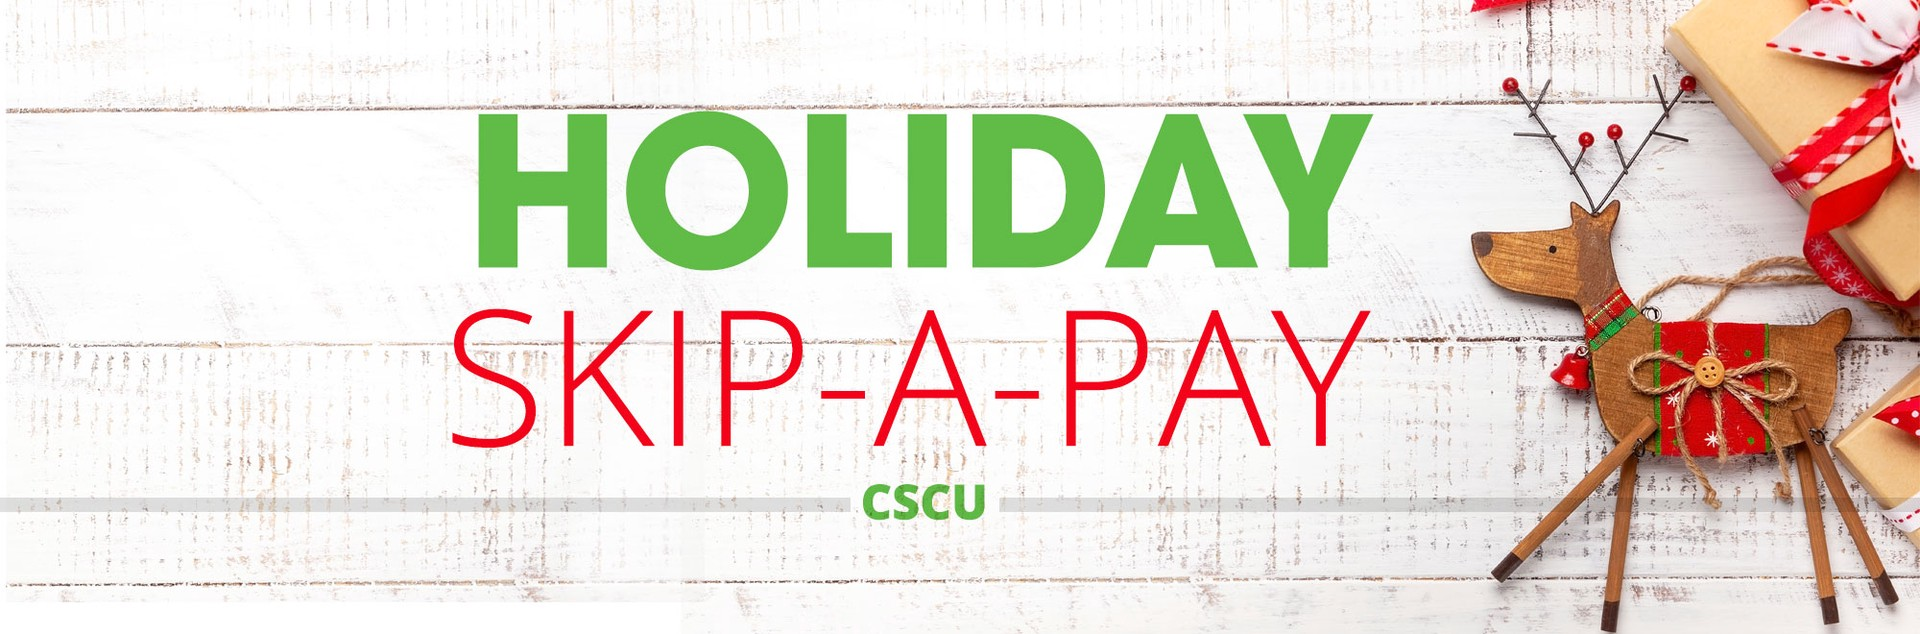 holiday skip a pay banner